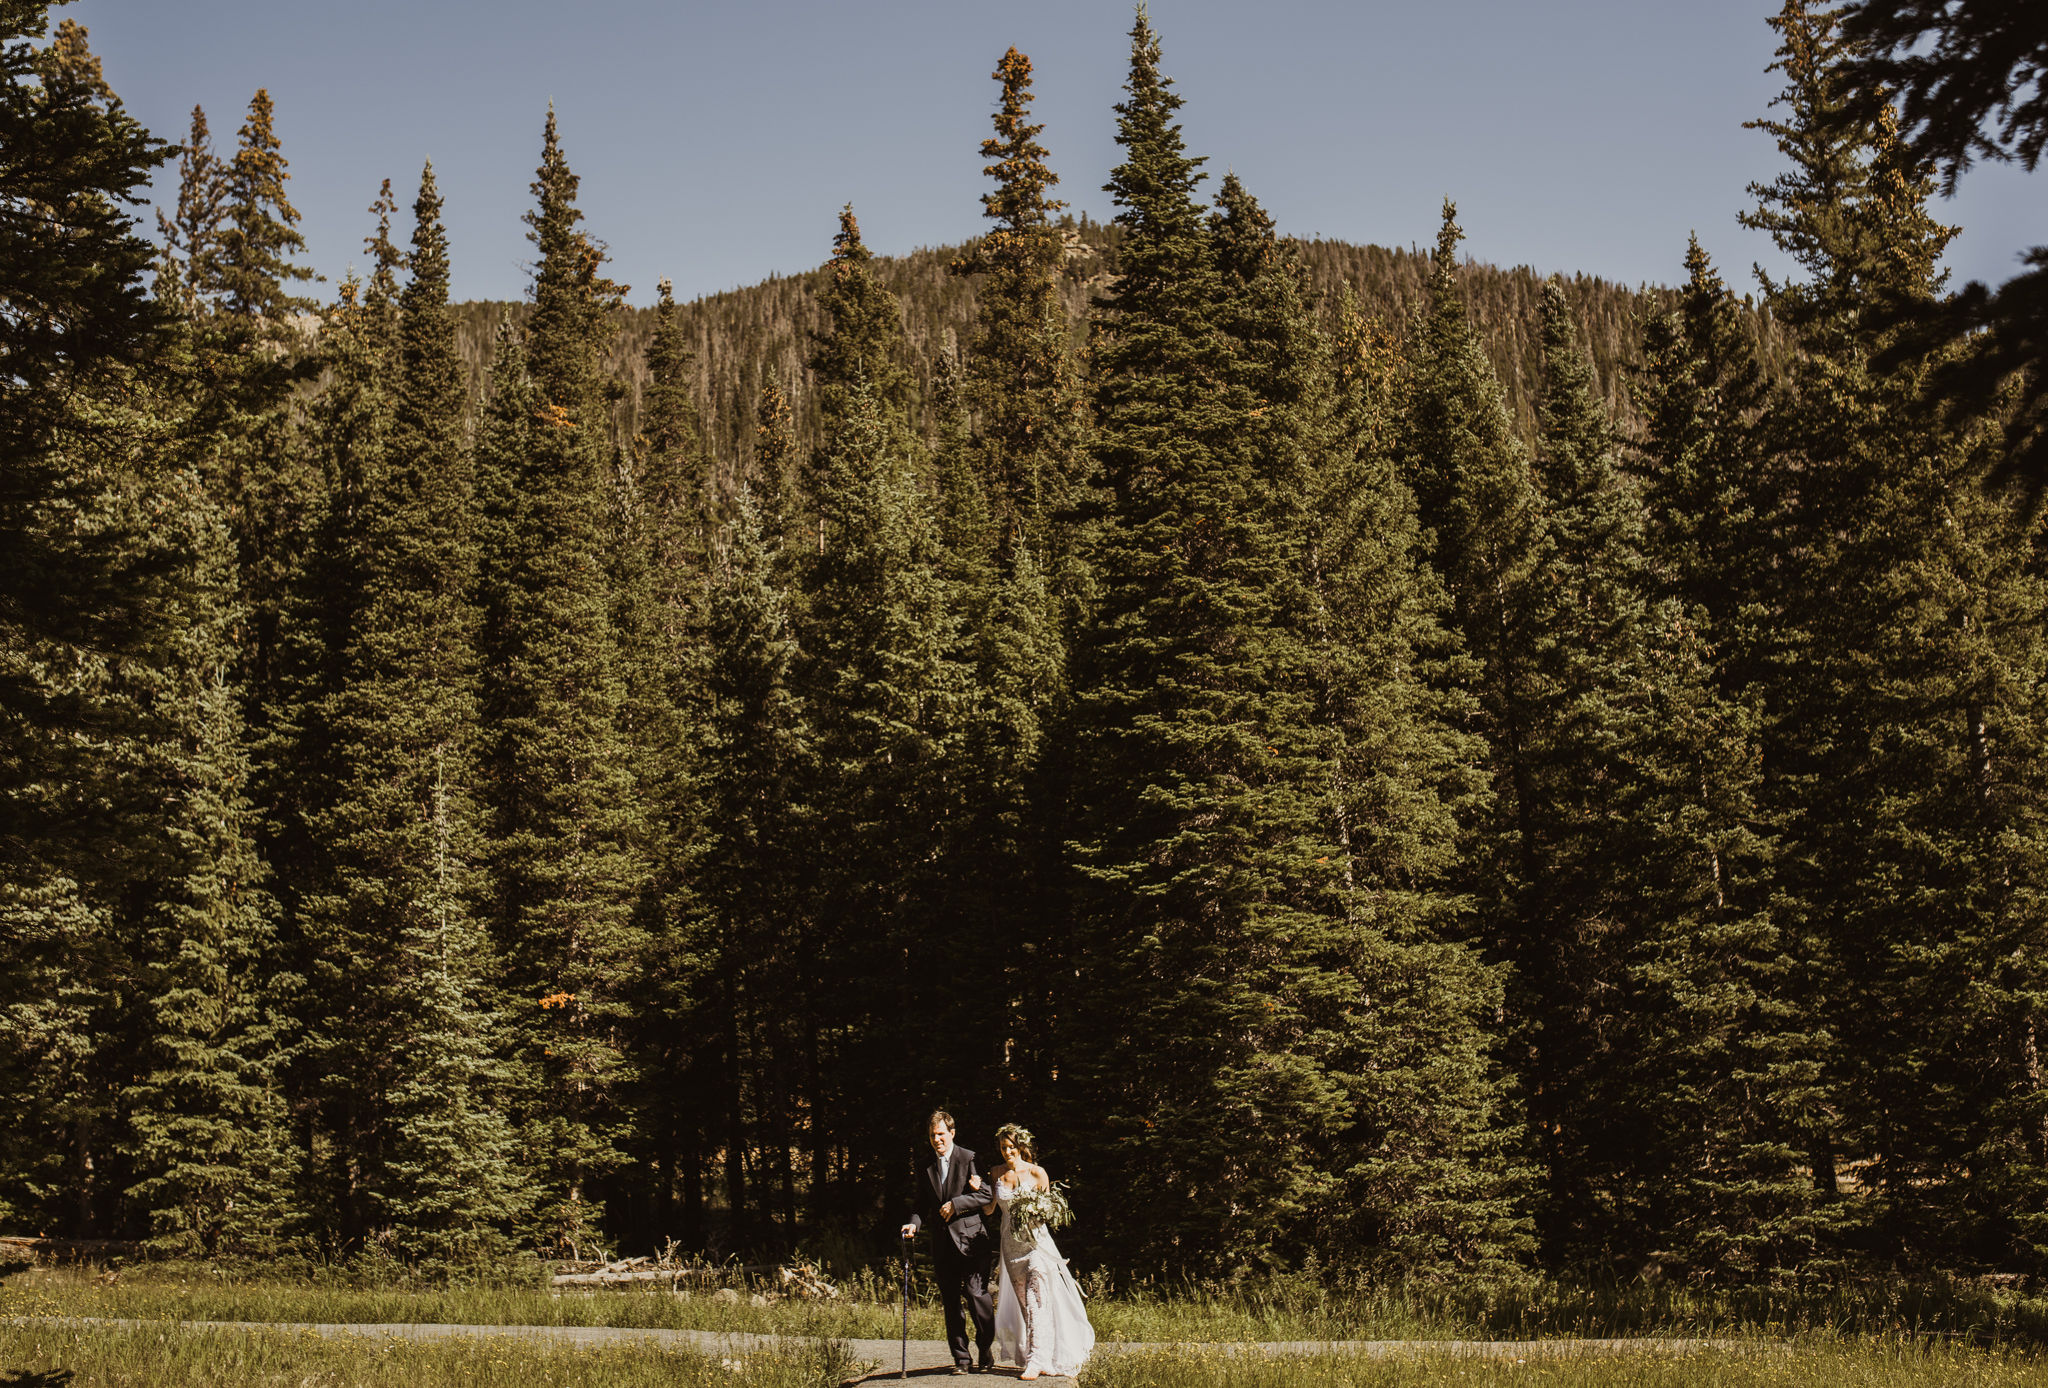 ©Isaiah + Taylor Photography - Estes National Park Adventure Elopement, Colorado Rockies-19.jpg